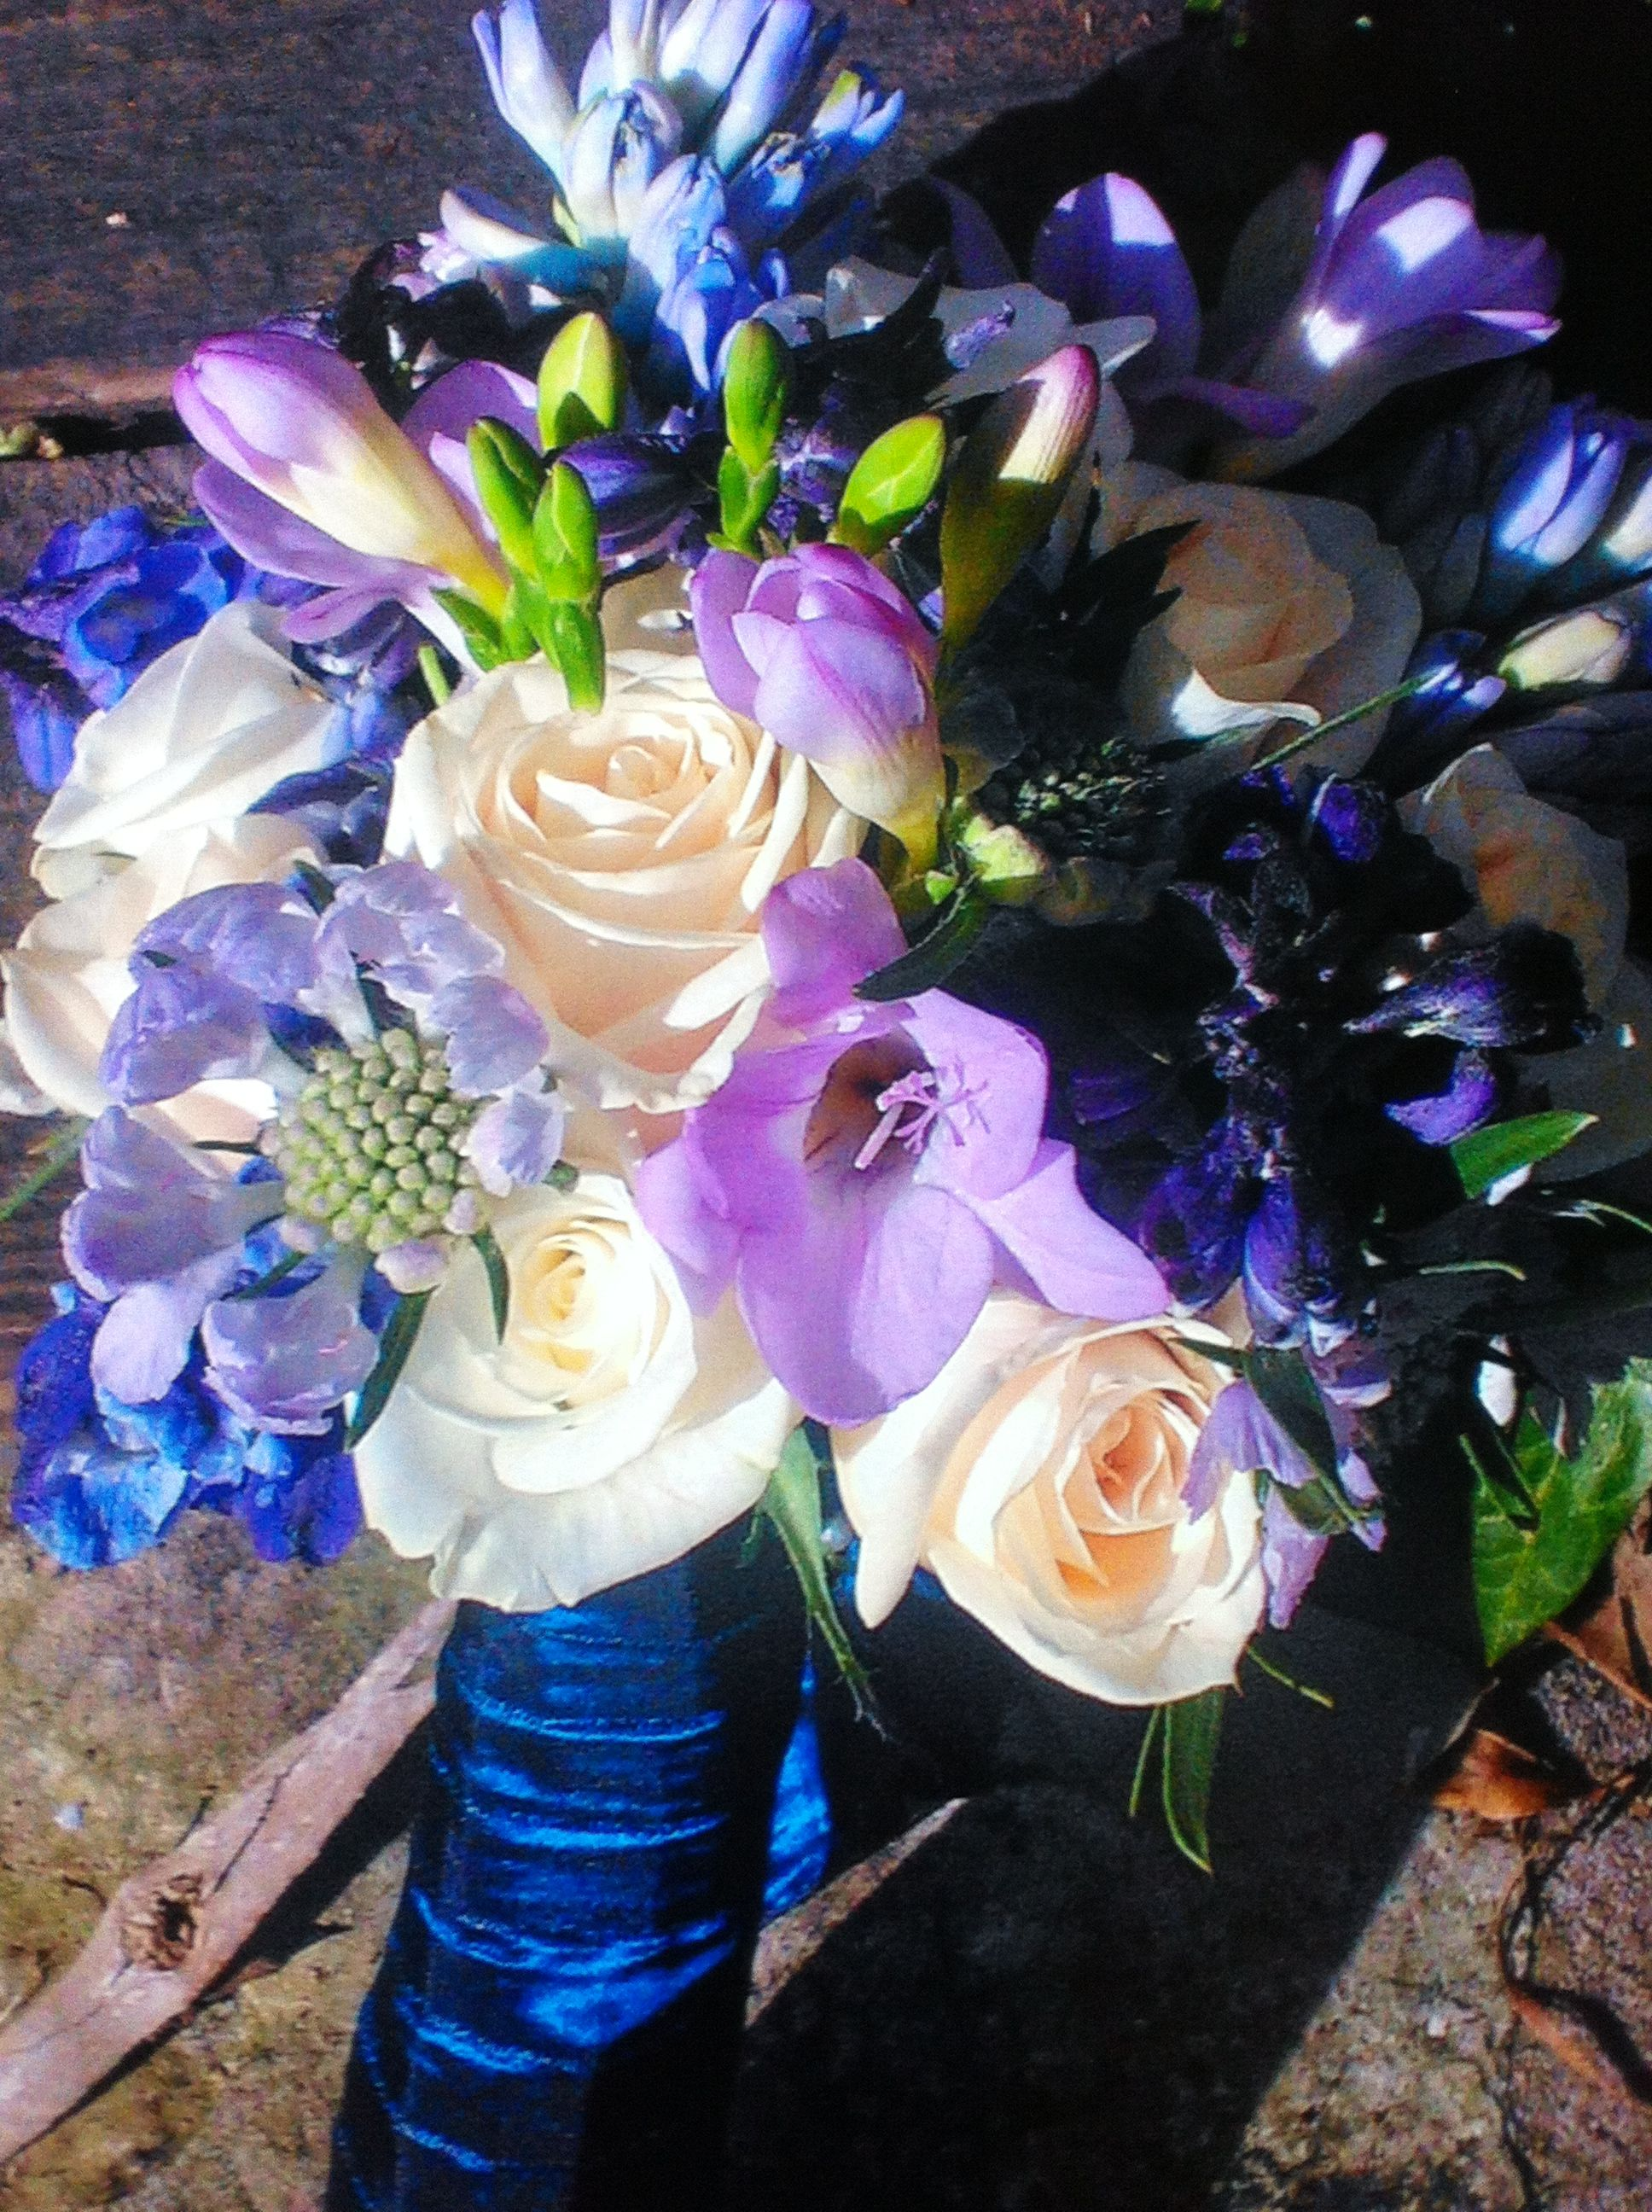 More floral options from Alena Jean